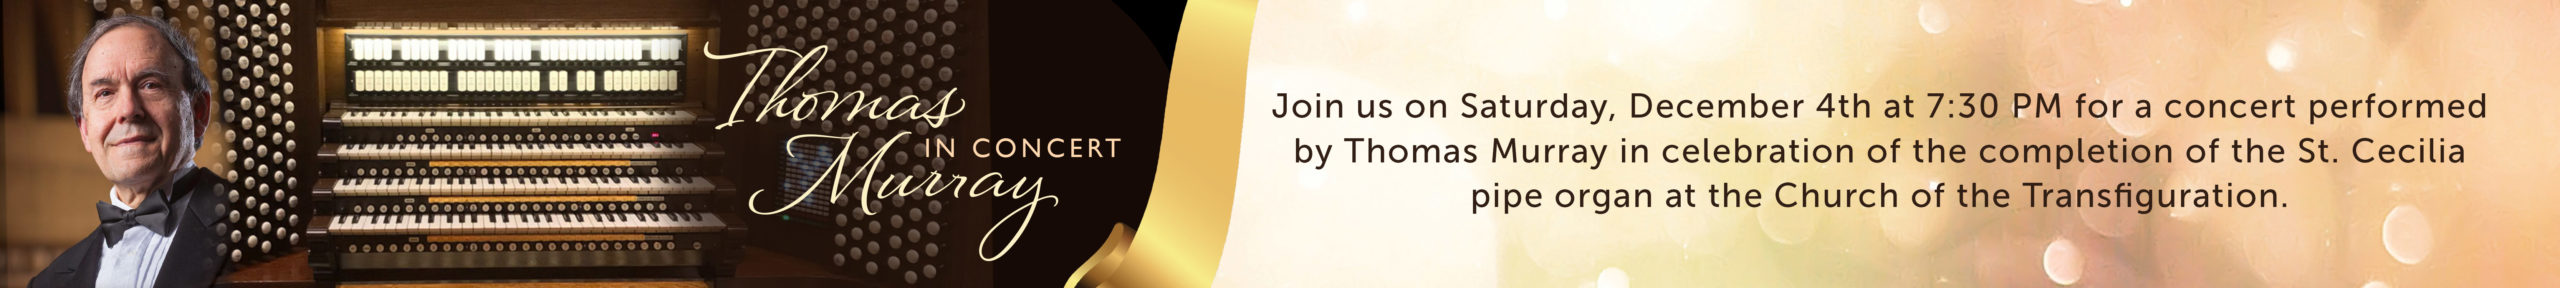 Banner image advertising Thomas Murray in Concert at the Church of the Transfiguration